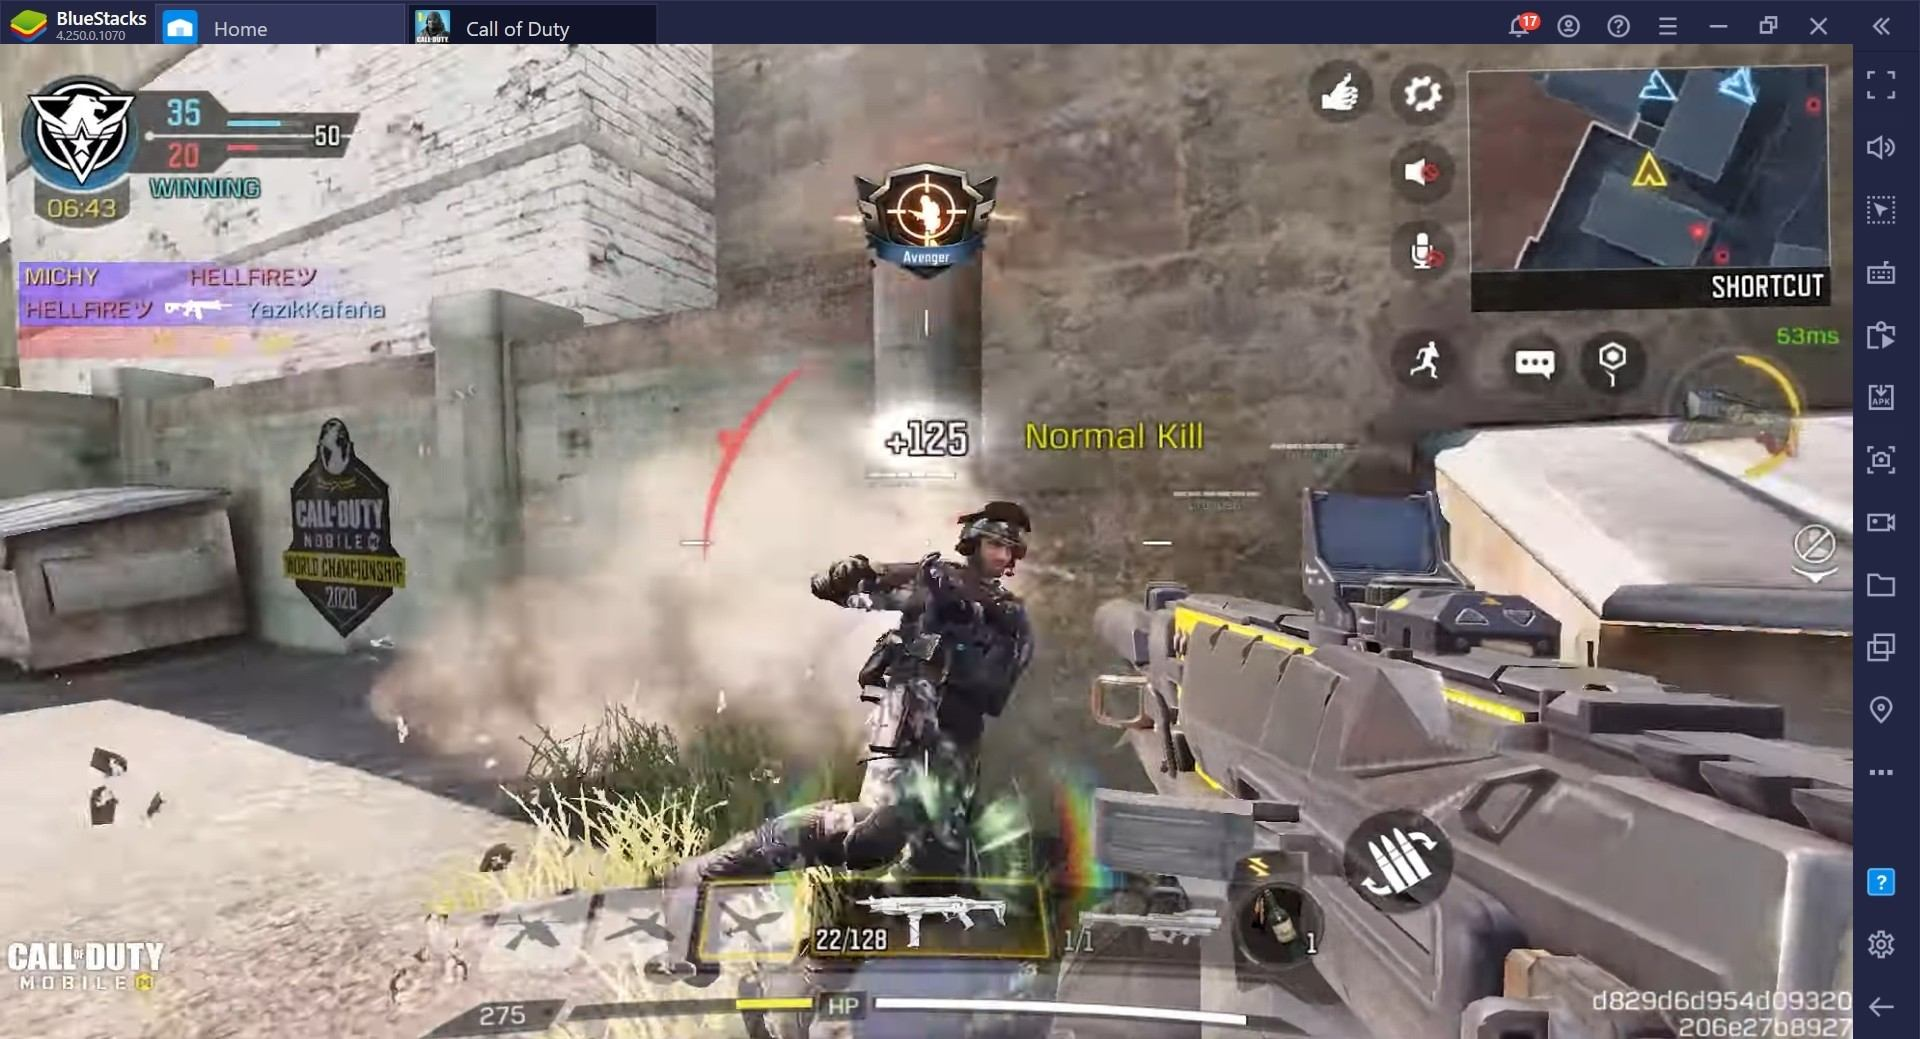 Carrying Solo in Call of Duty: Mobile Multiplayer Matches, It's Way Harder